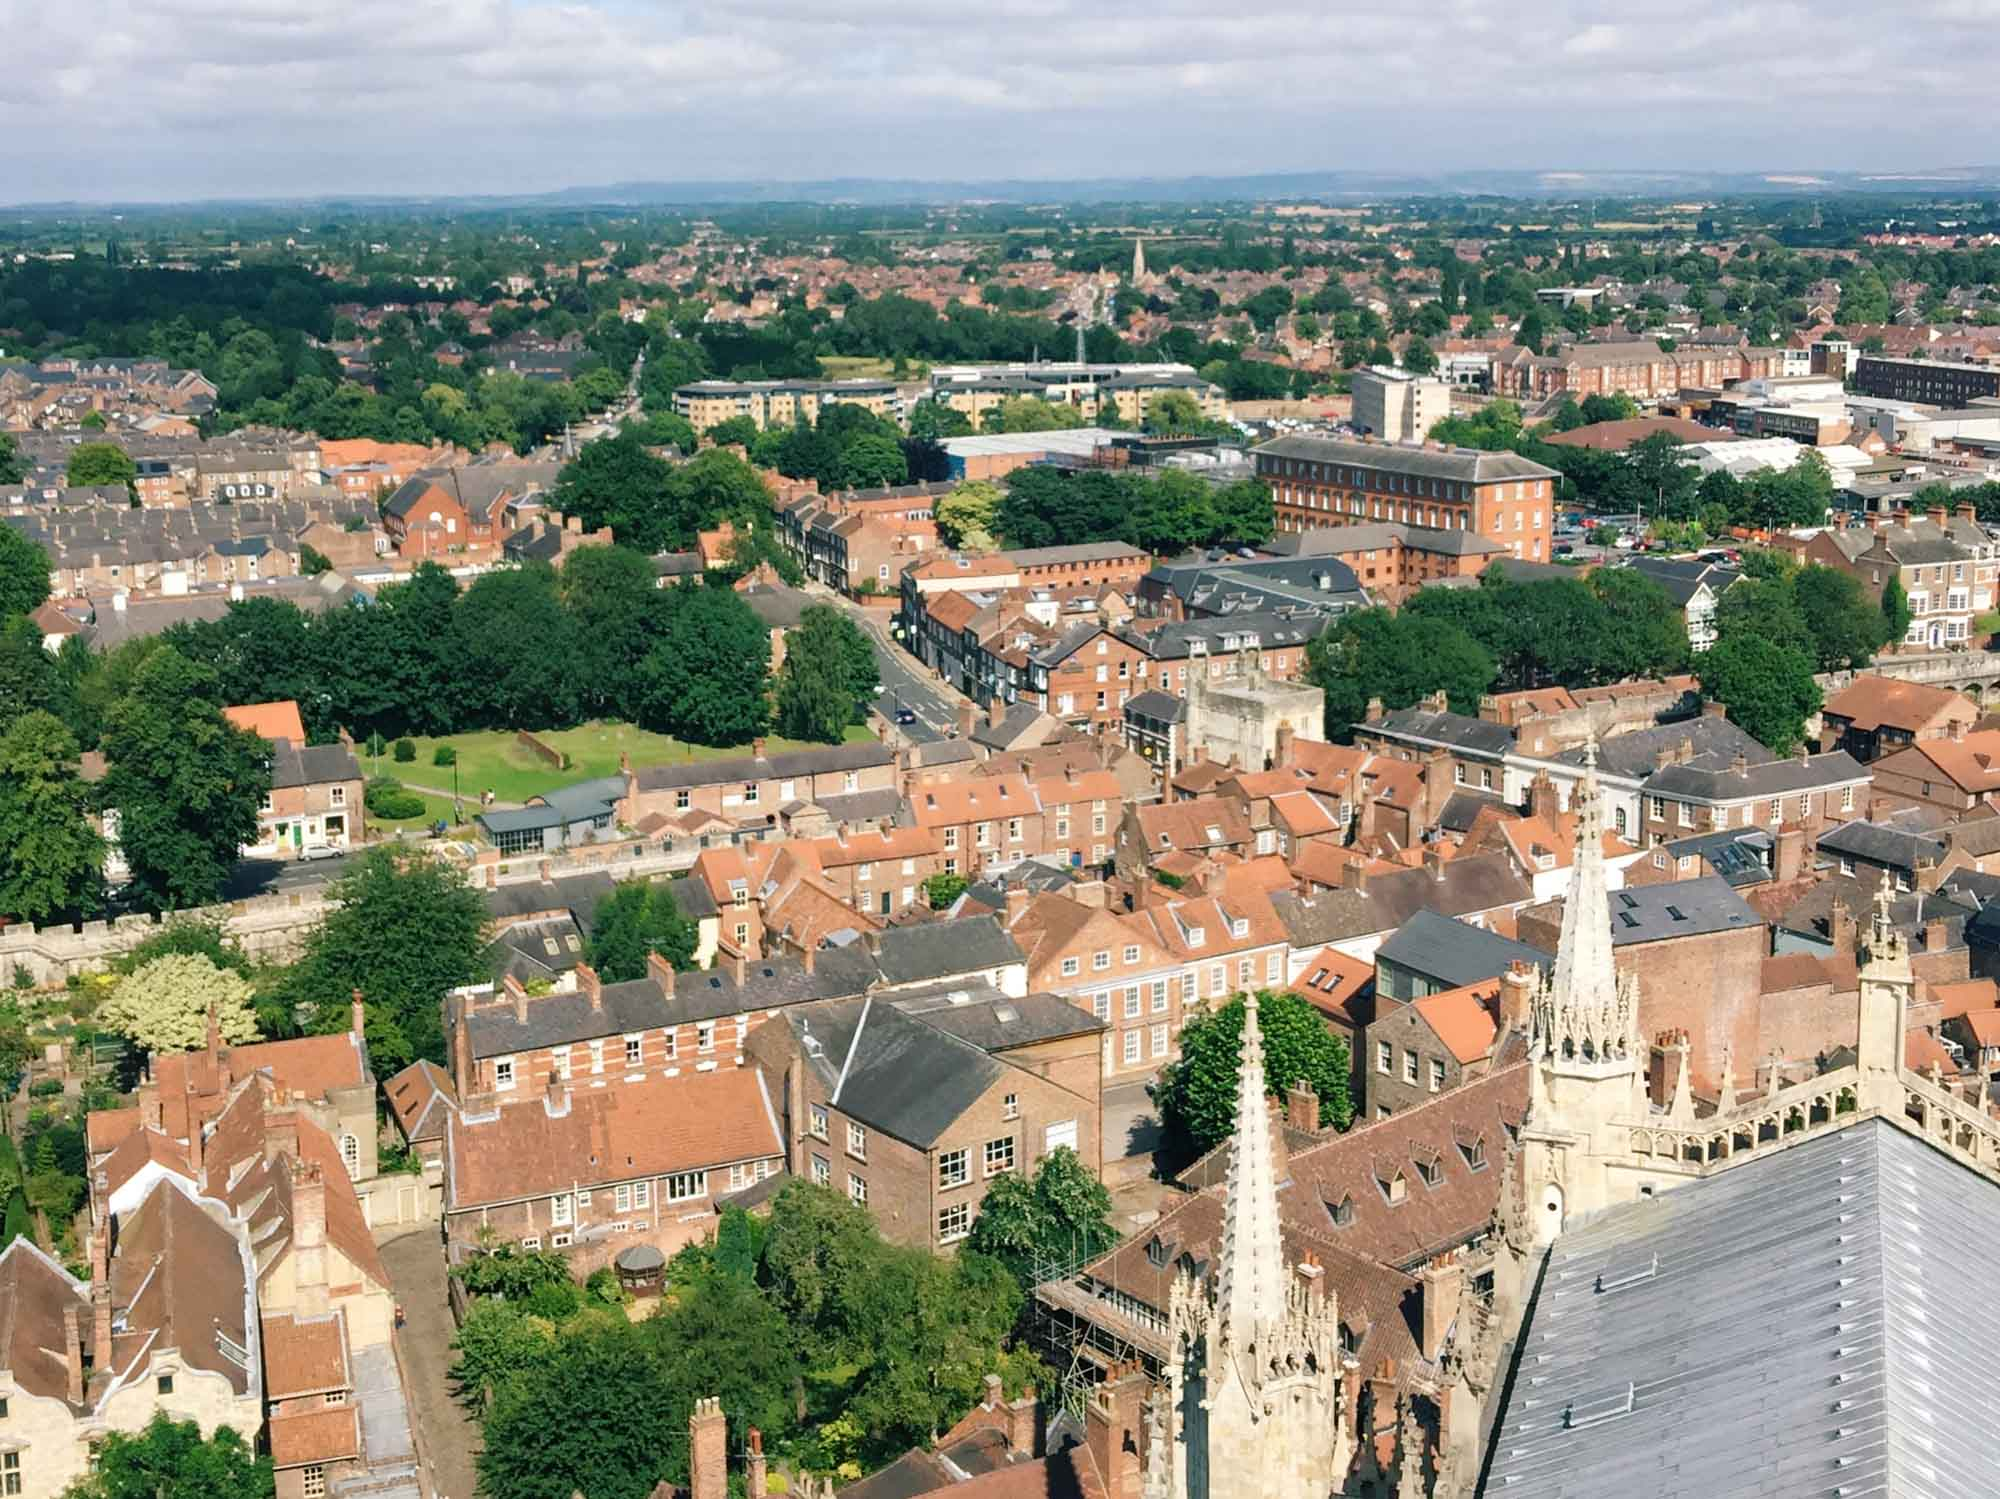 Best things to do in York - York Minster view from the tower